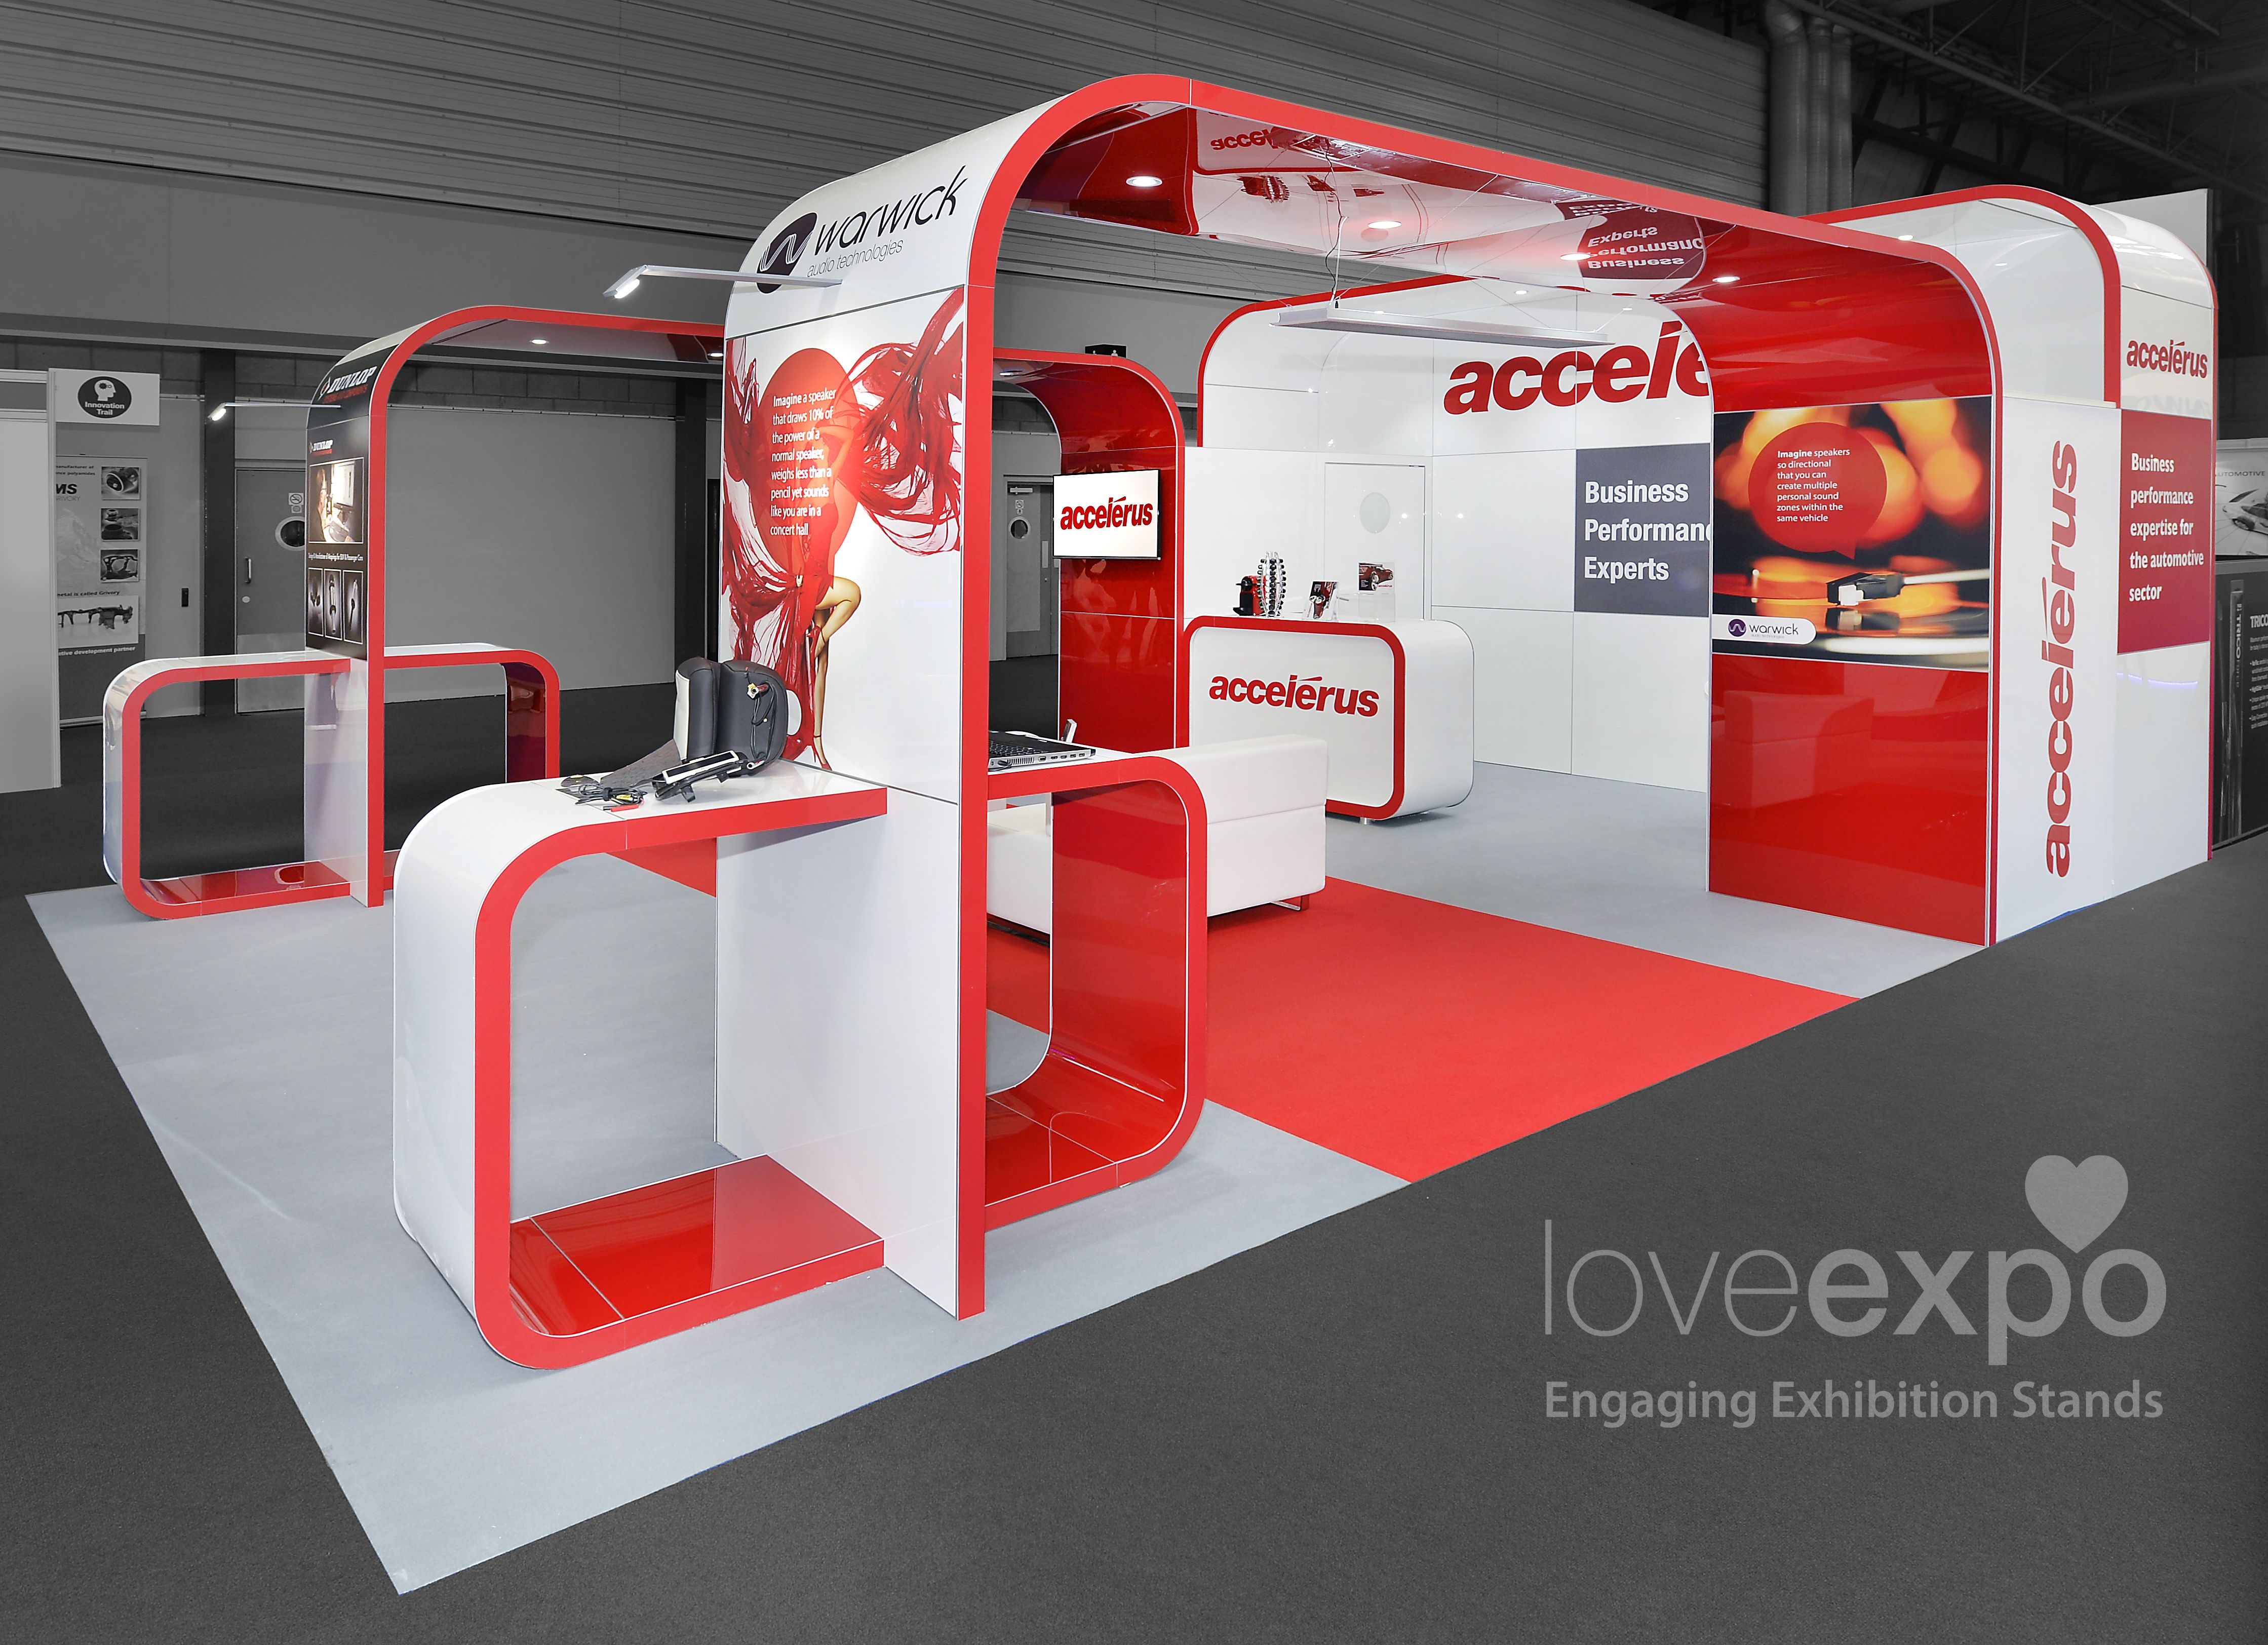 7m x 5m Exhibition Stand at Automechanika #exhibition #design #build #install #exhibitionstand #standdesign #customstand